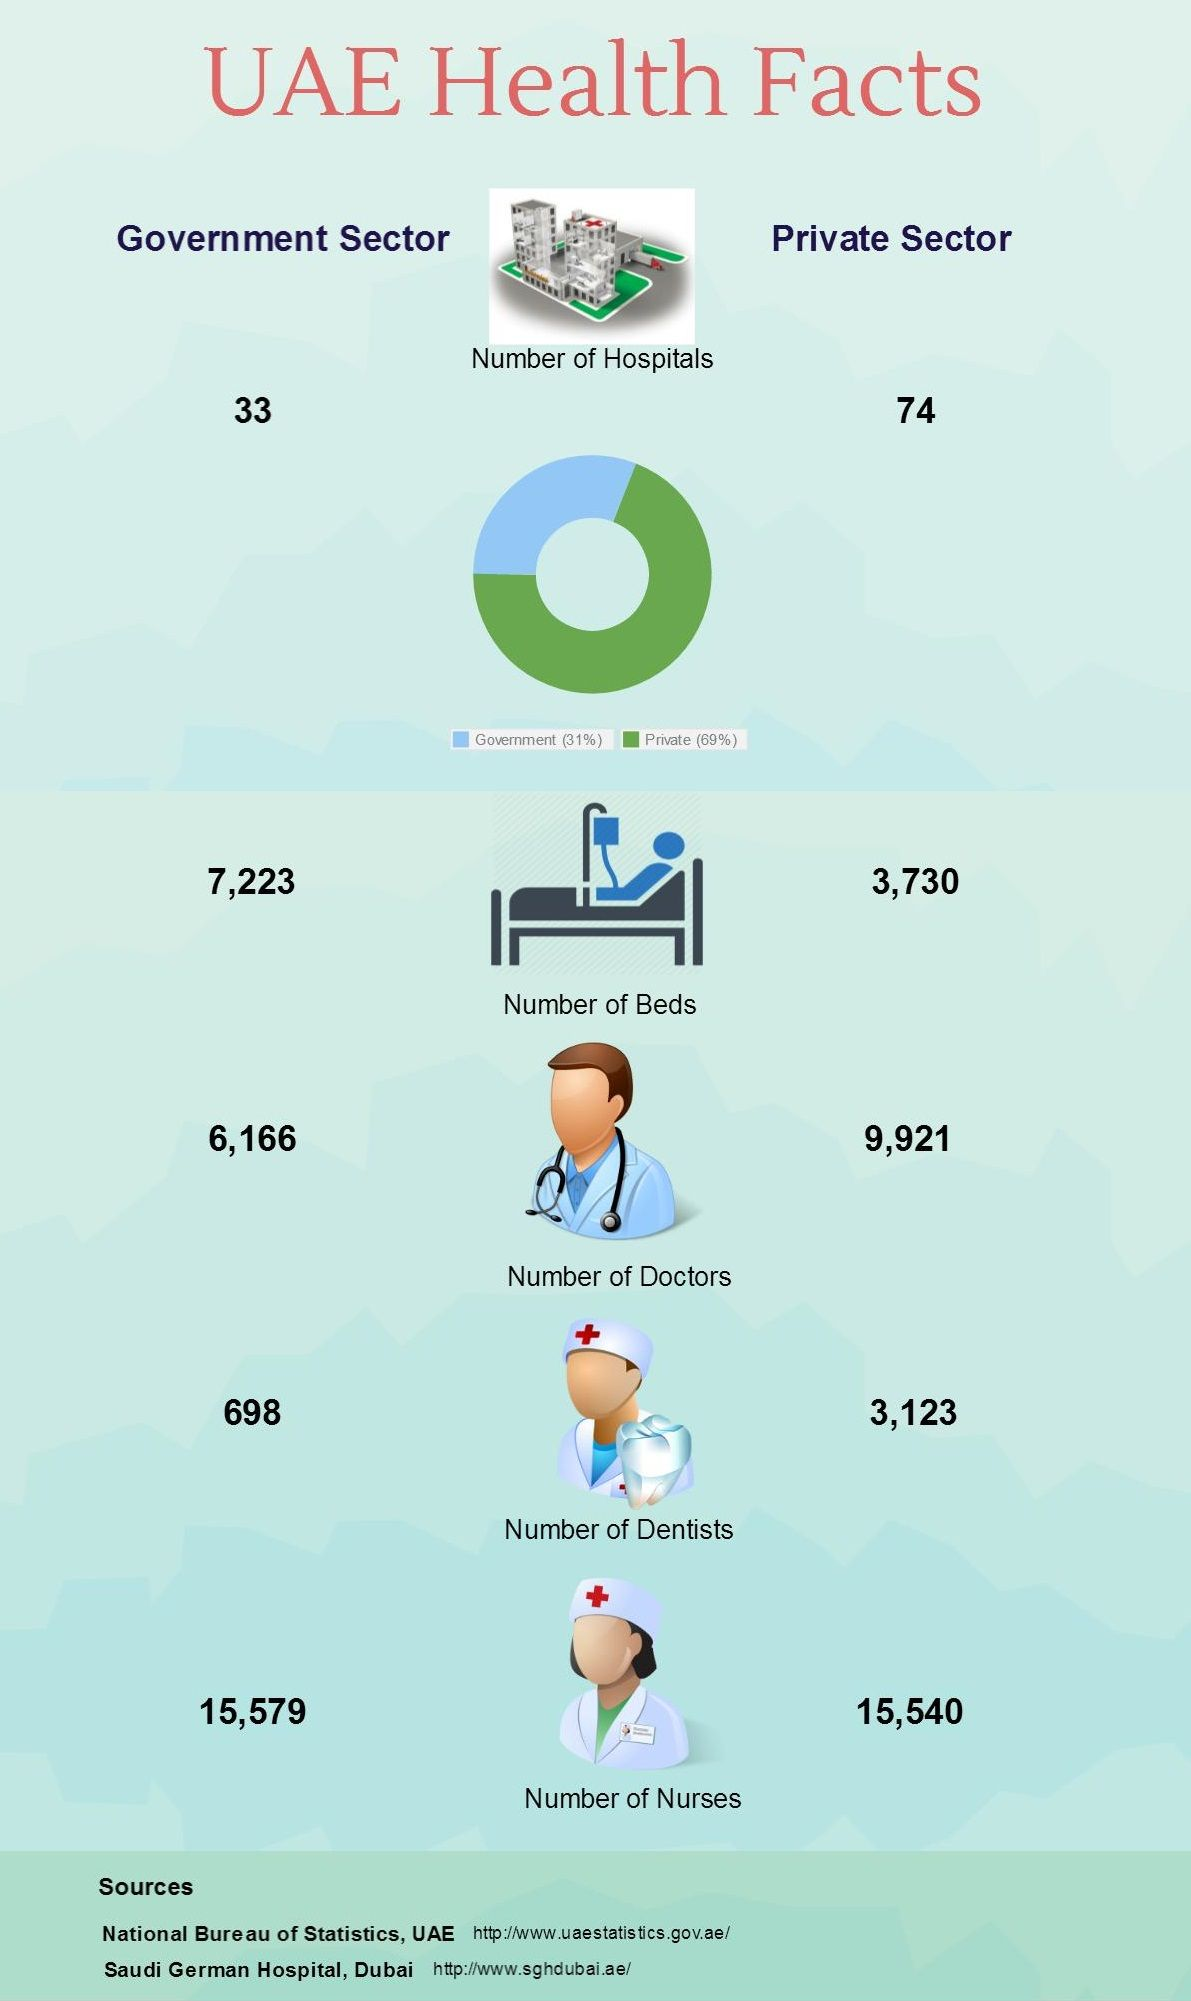 The Infographic Is Showing Some Interesting Facts About Health In